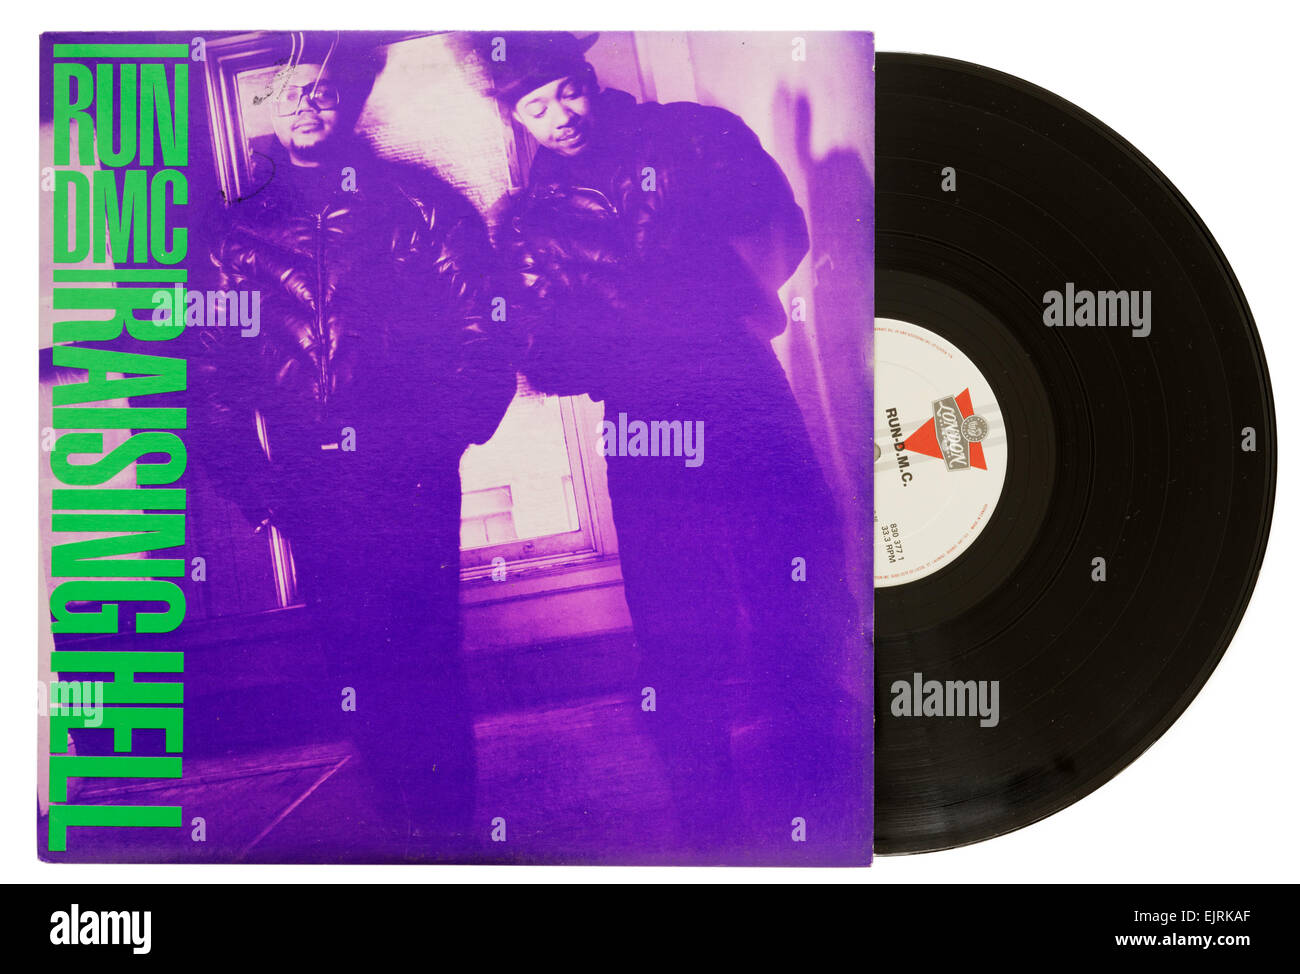 Run DMC Raising Hell album - Stock Image